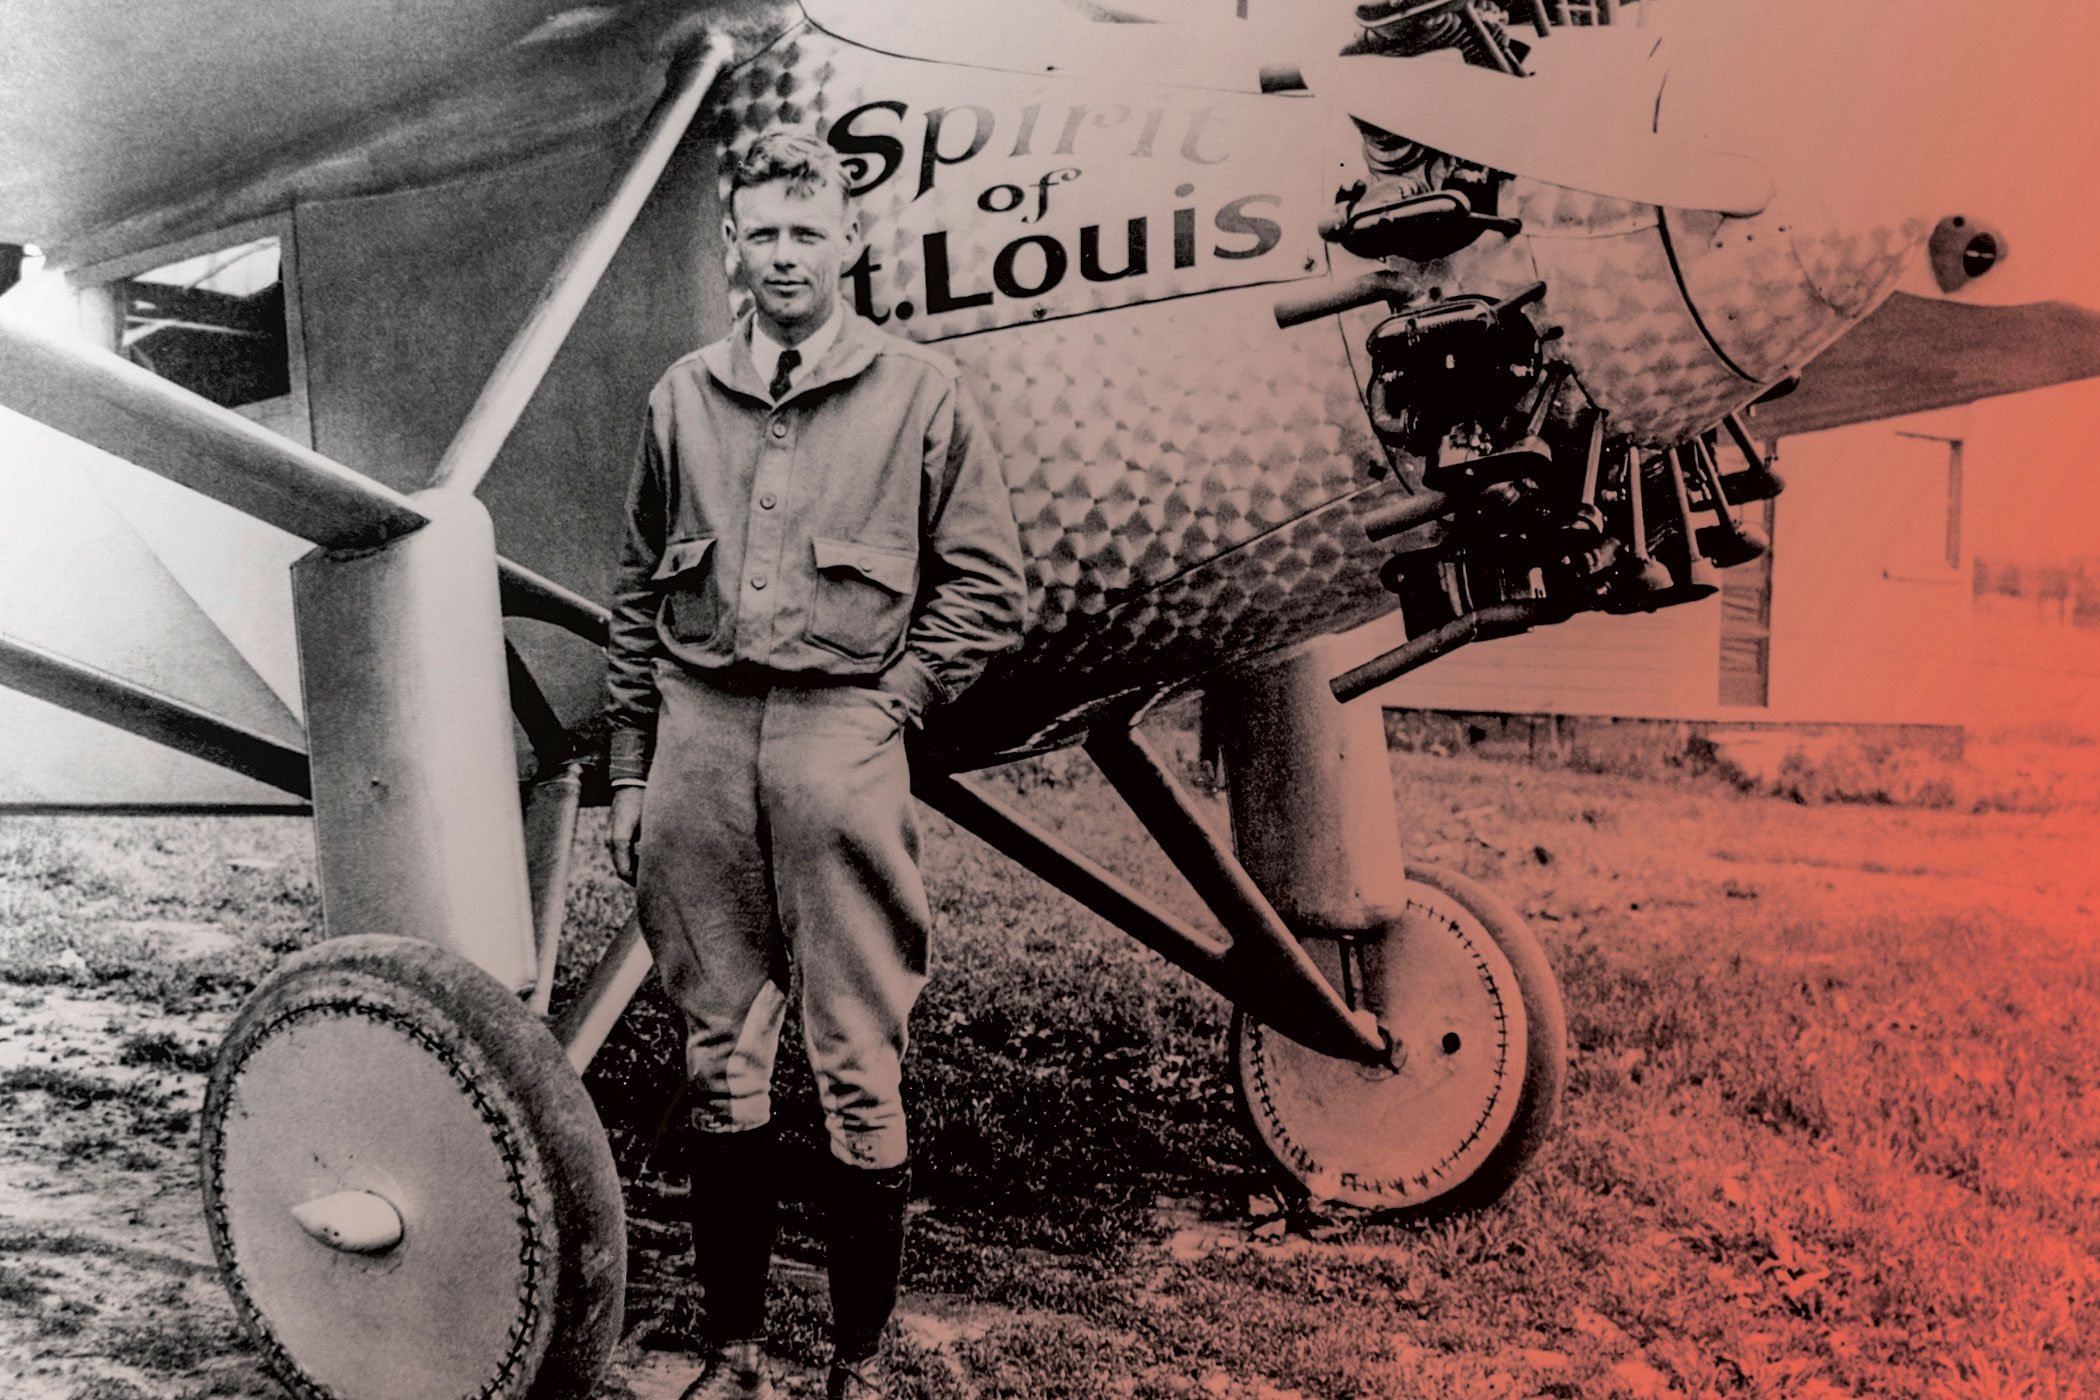 CHARLES LINDBERGH standing in front of the Spirit of St. Louis